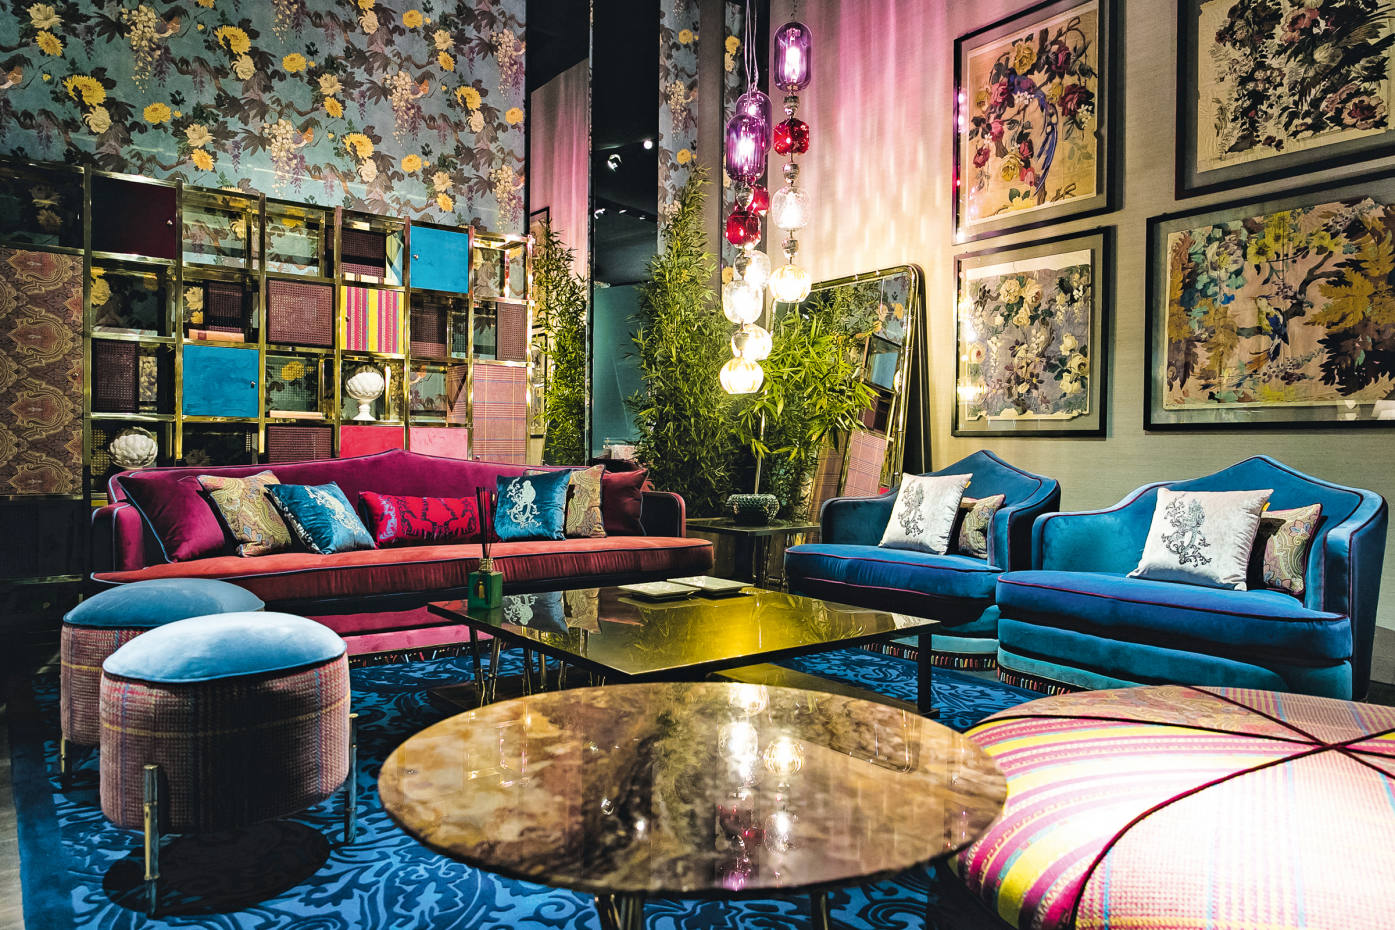 Etro's offering included the velvet Amina sofa, €13,850, and armchair, €6,700, wenge-wood and fabric Bambara pouf, €12,800, and Robin wallpaper, €135